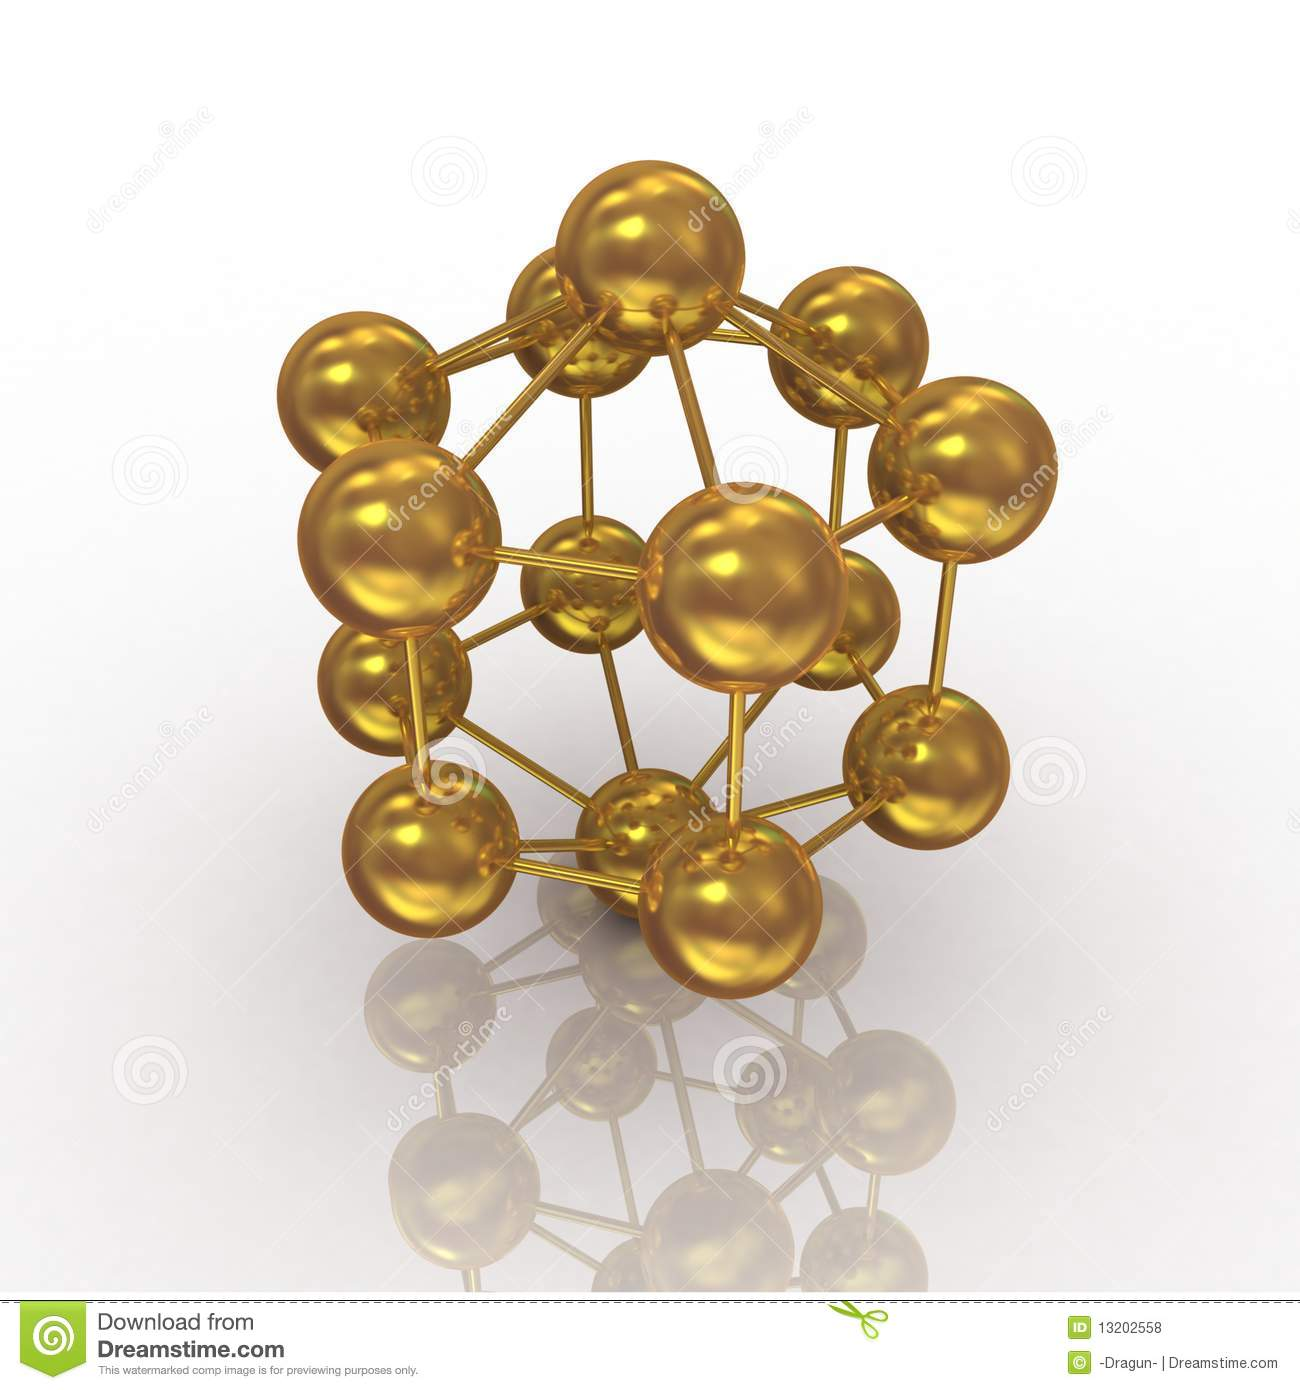 gold molecule royalty free stock photos image 13202558 table clip art images table clipart with coins